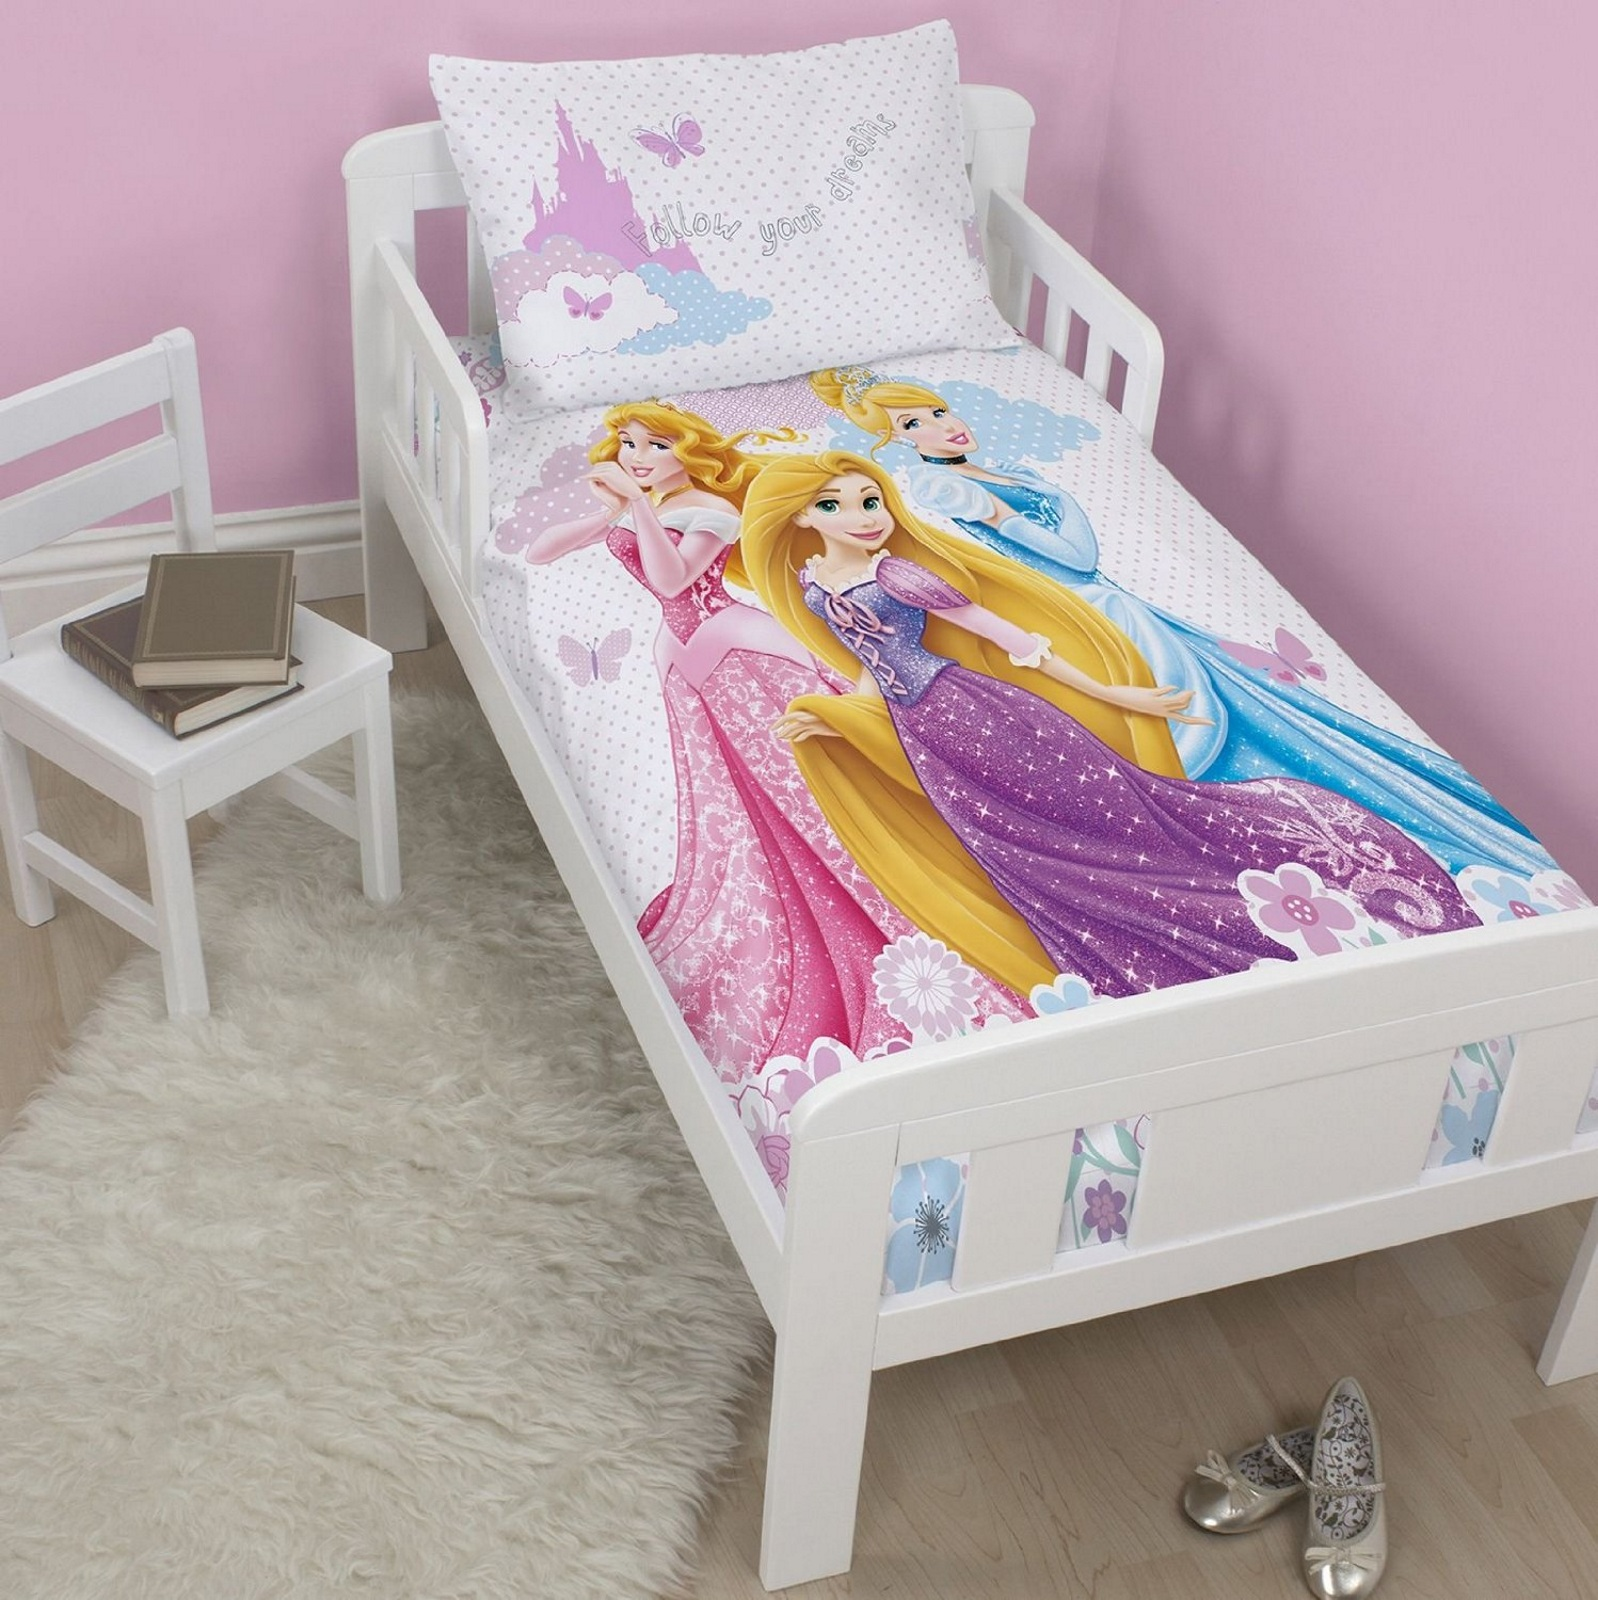 duvet sets & pillow cases. Create a beautifully coordinating bedroom for your little one with Mothercare's range of kids' pillowcases and duvets.